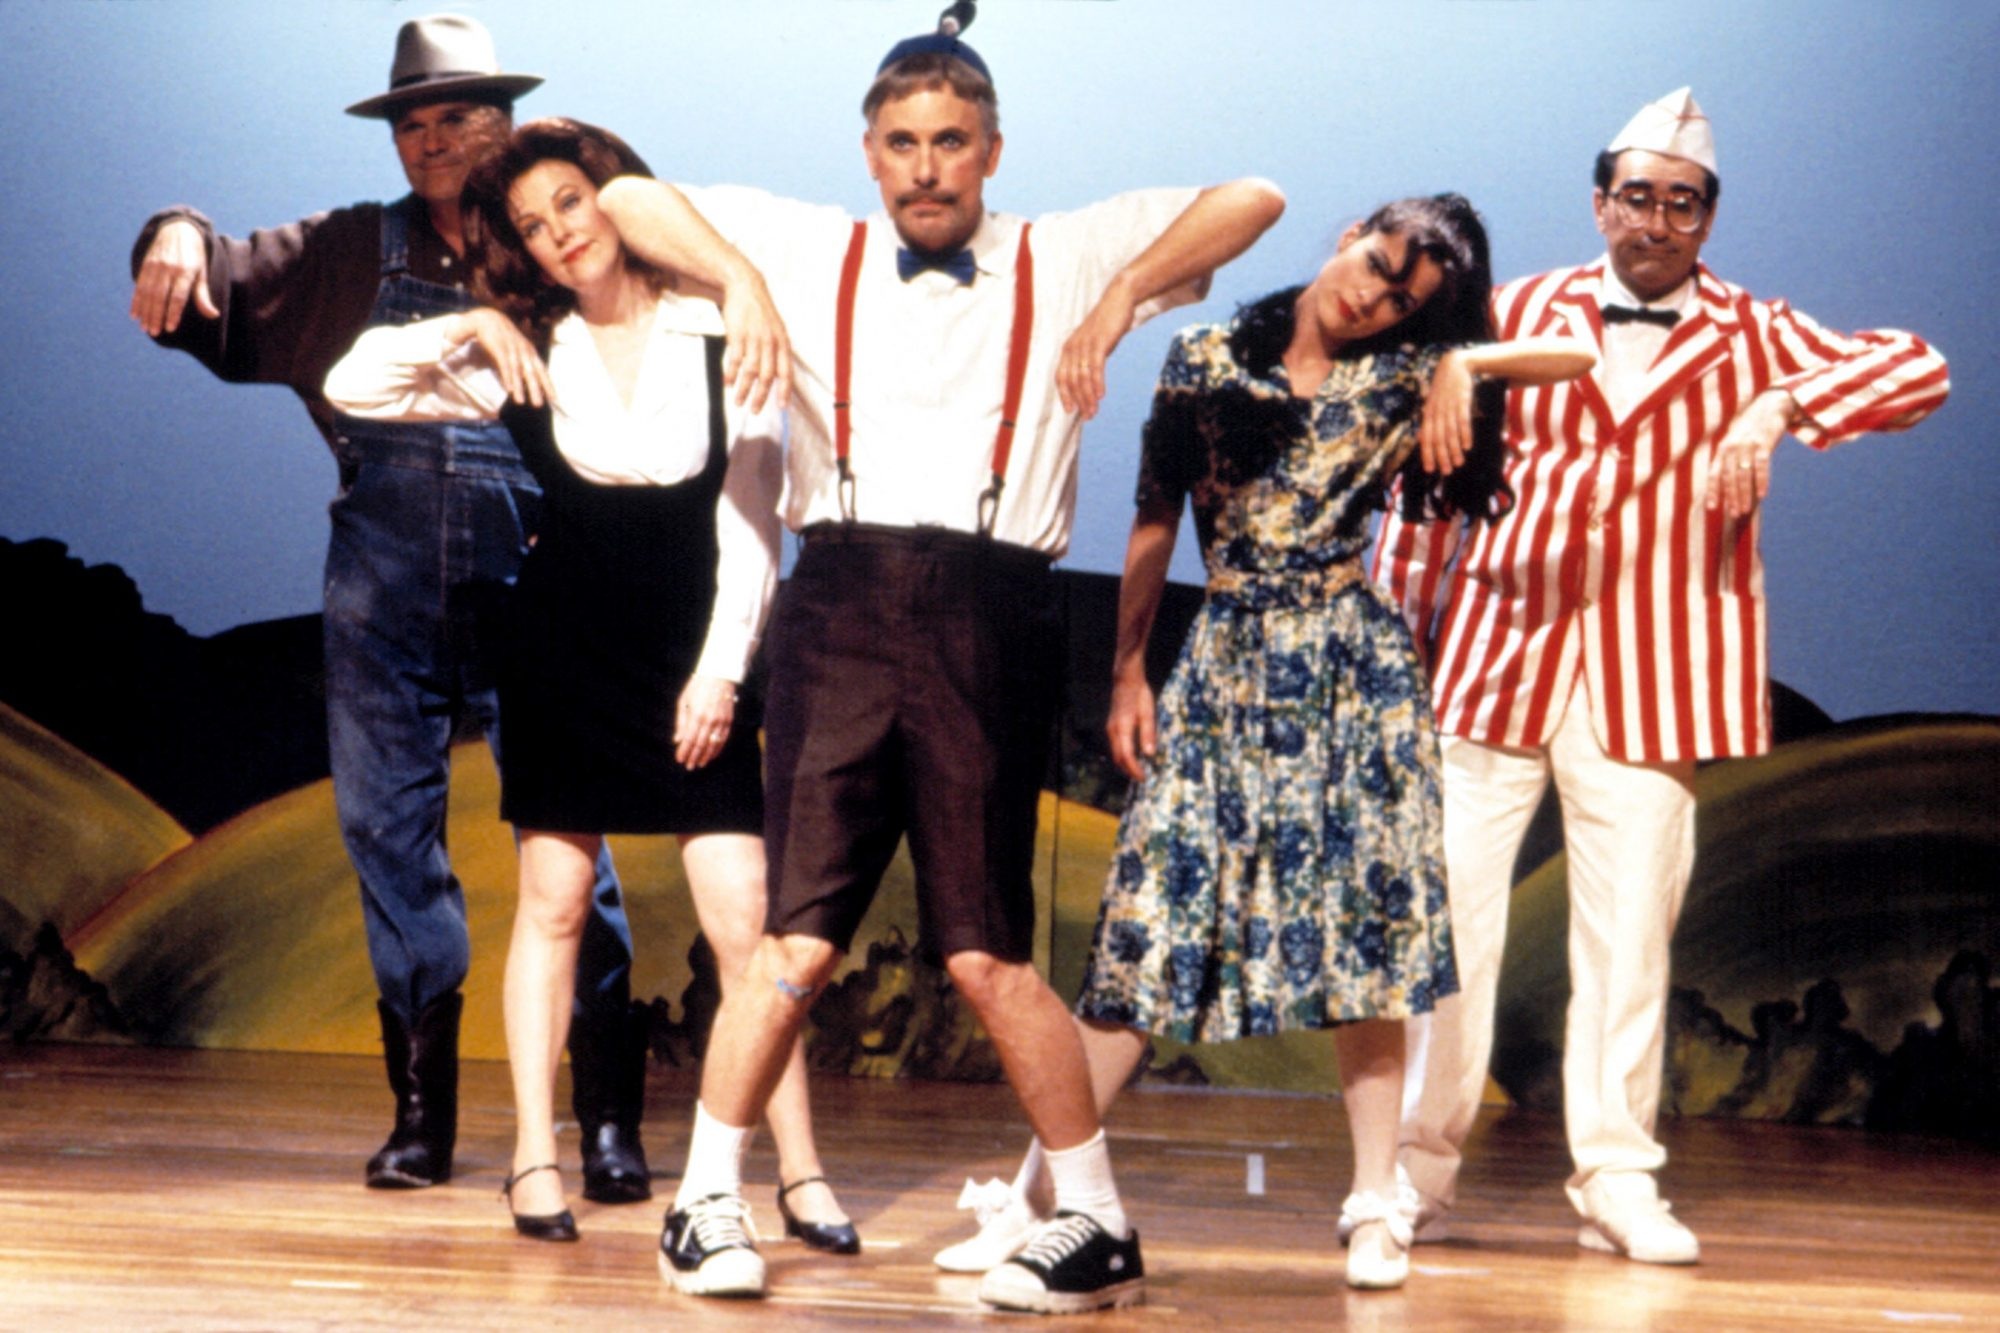 WAITING FOR GUFFMAN, Fred Willard, Catherine O'Hara, Christopher Guest, Parker Posey, Eugene Levy, 1